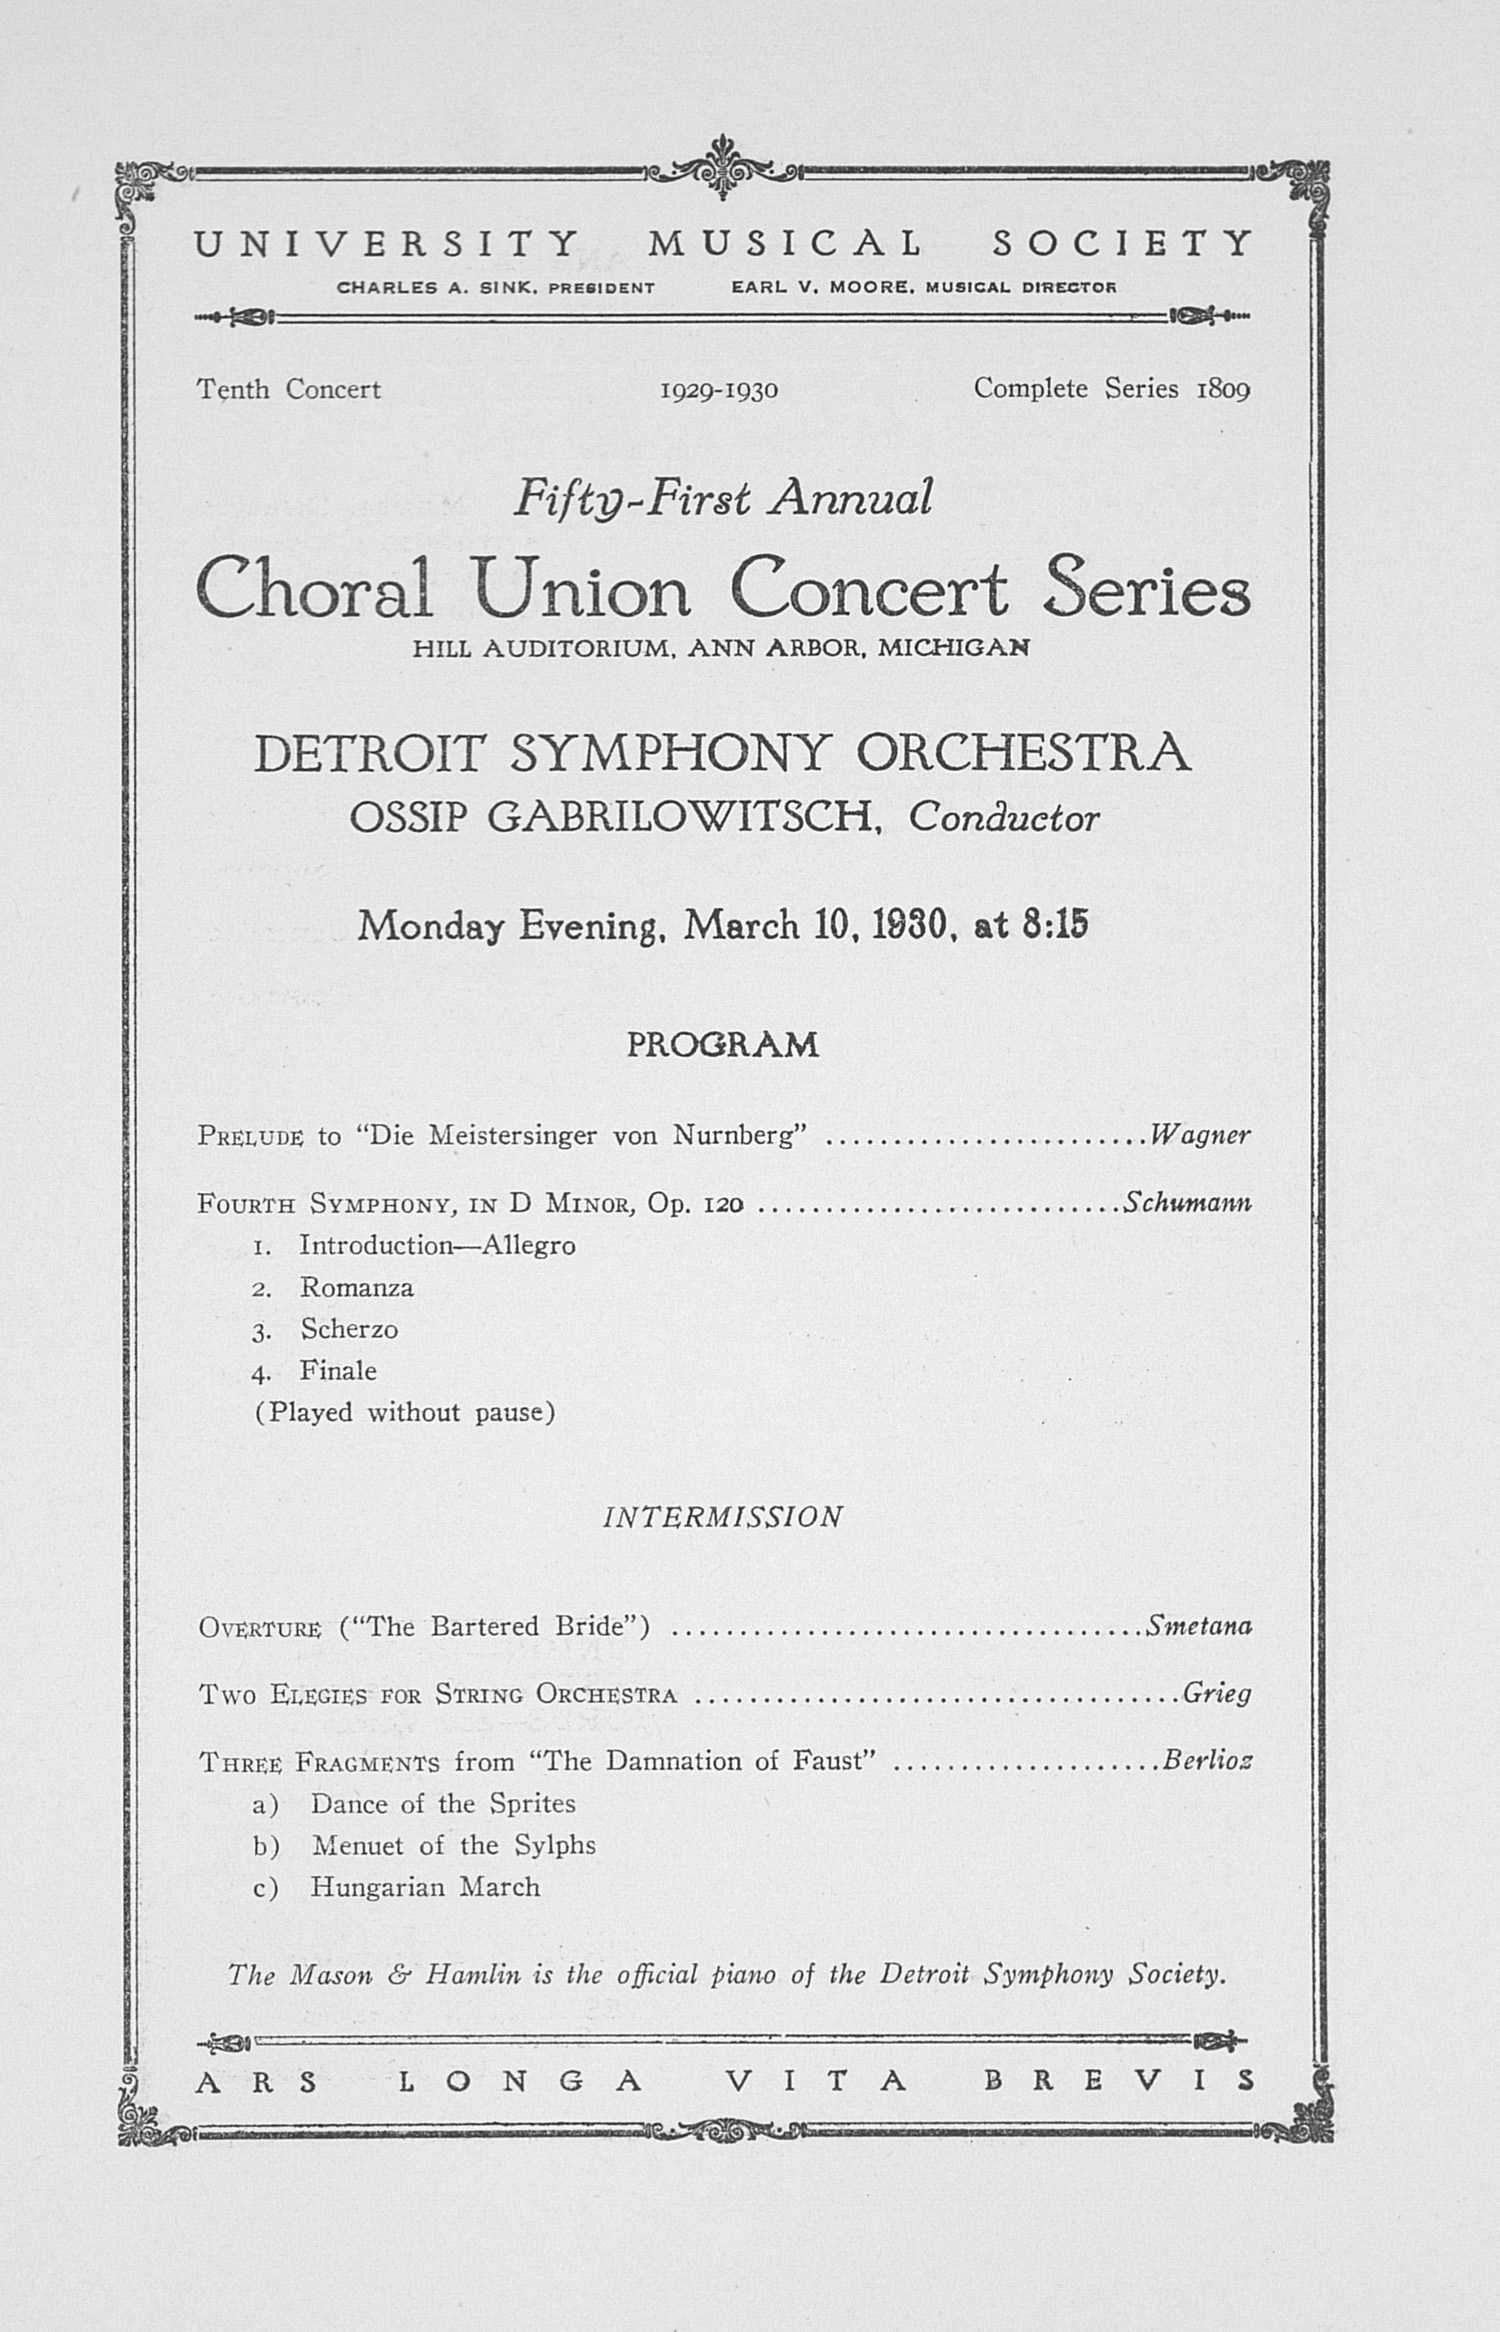 UMS Concert Program, March 10, 1930: Fifty-first Annual Choral Union Concert Series -- Detroit Symphony Orchestra image